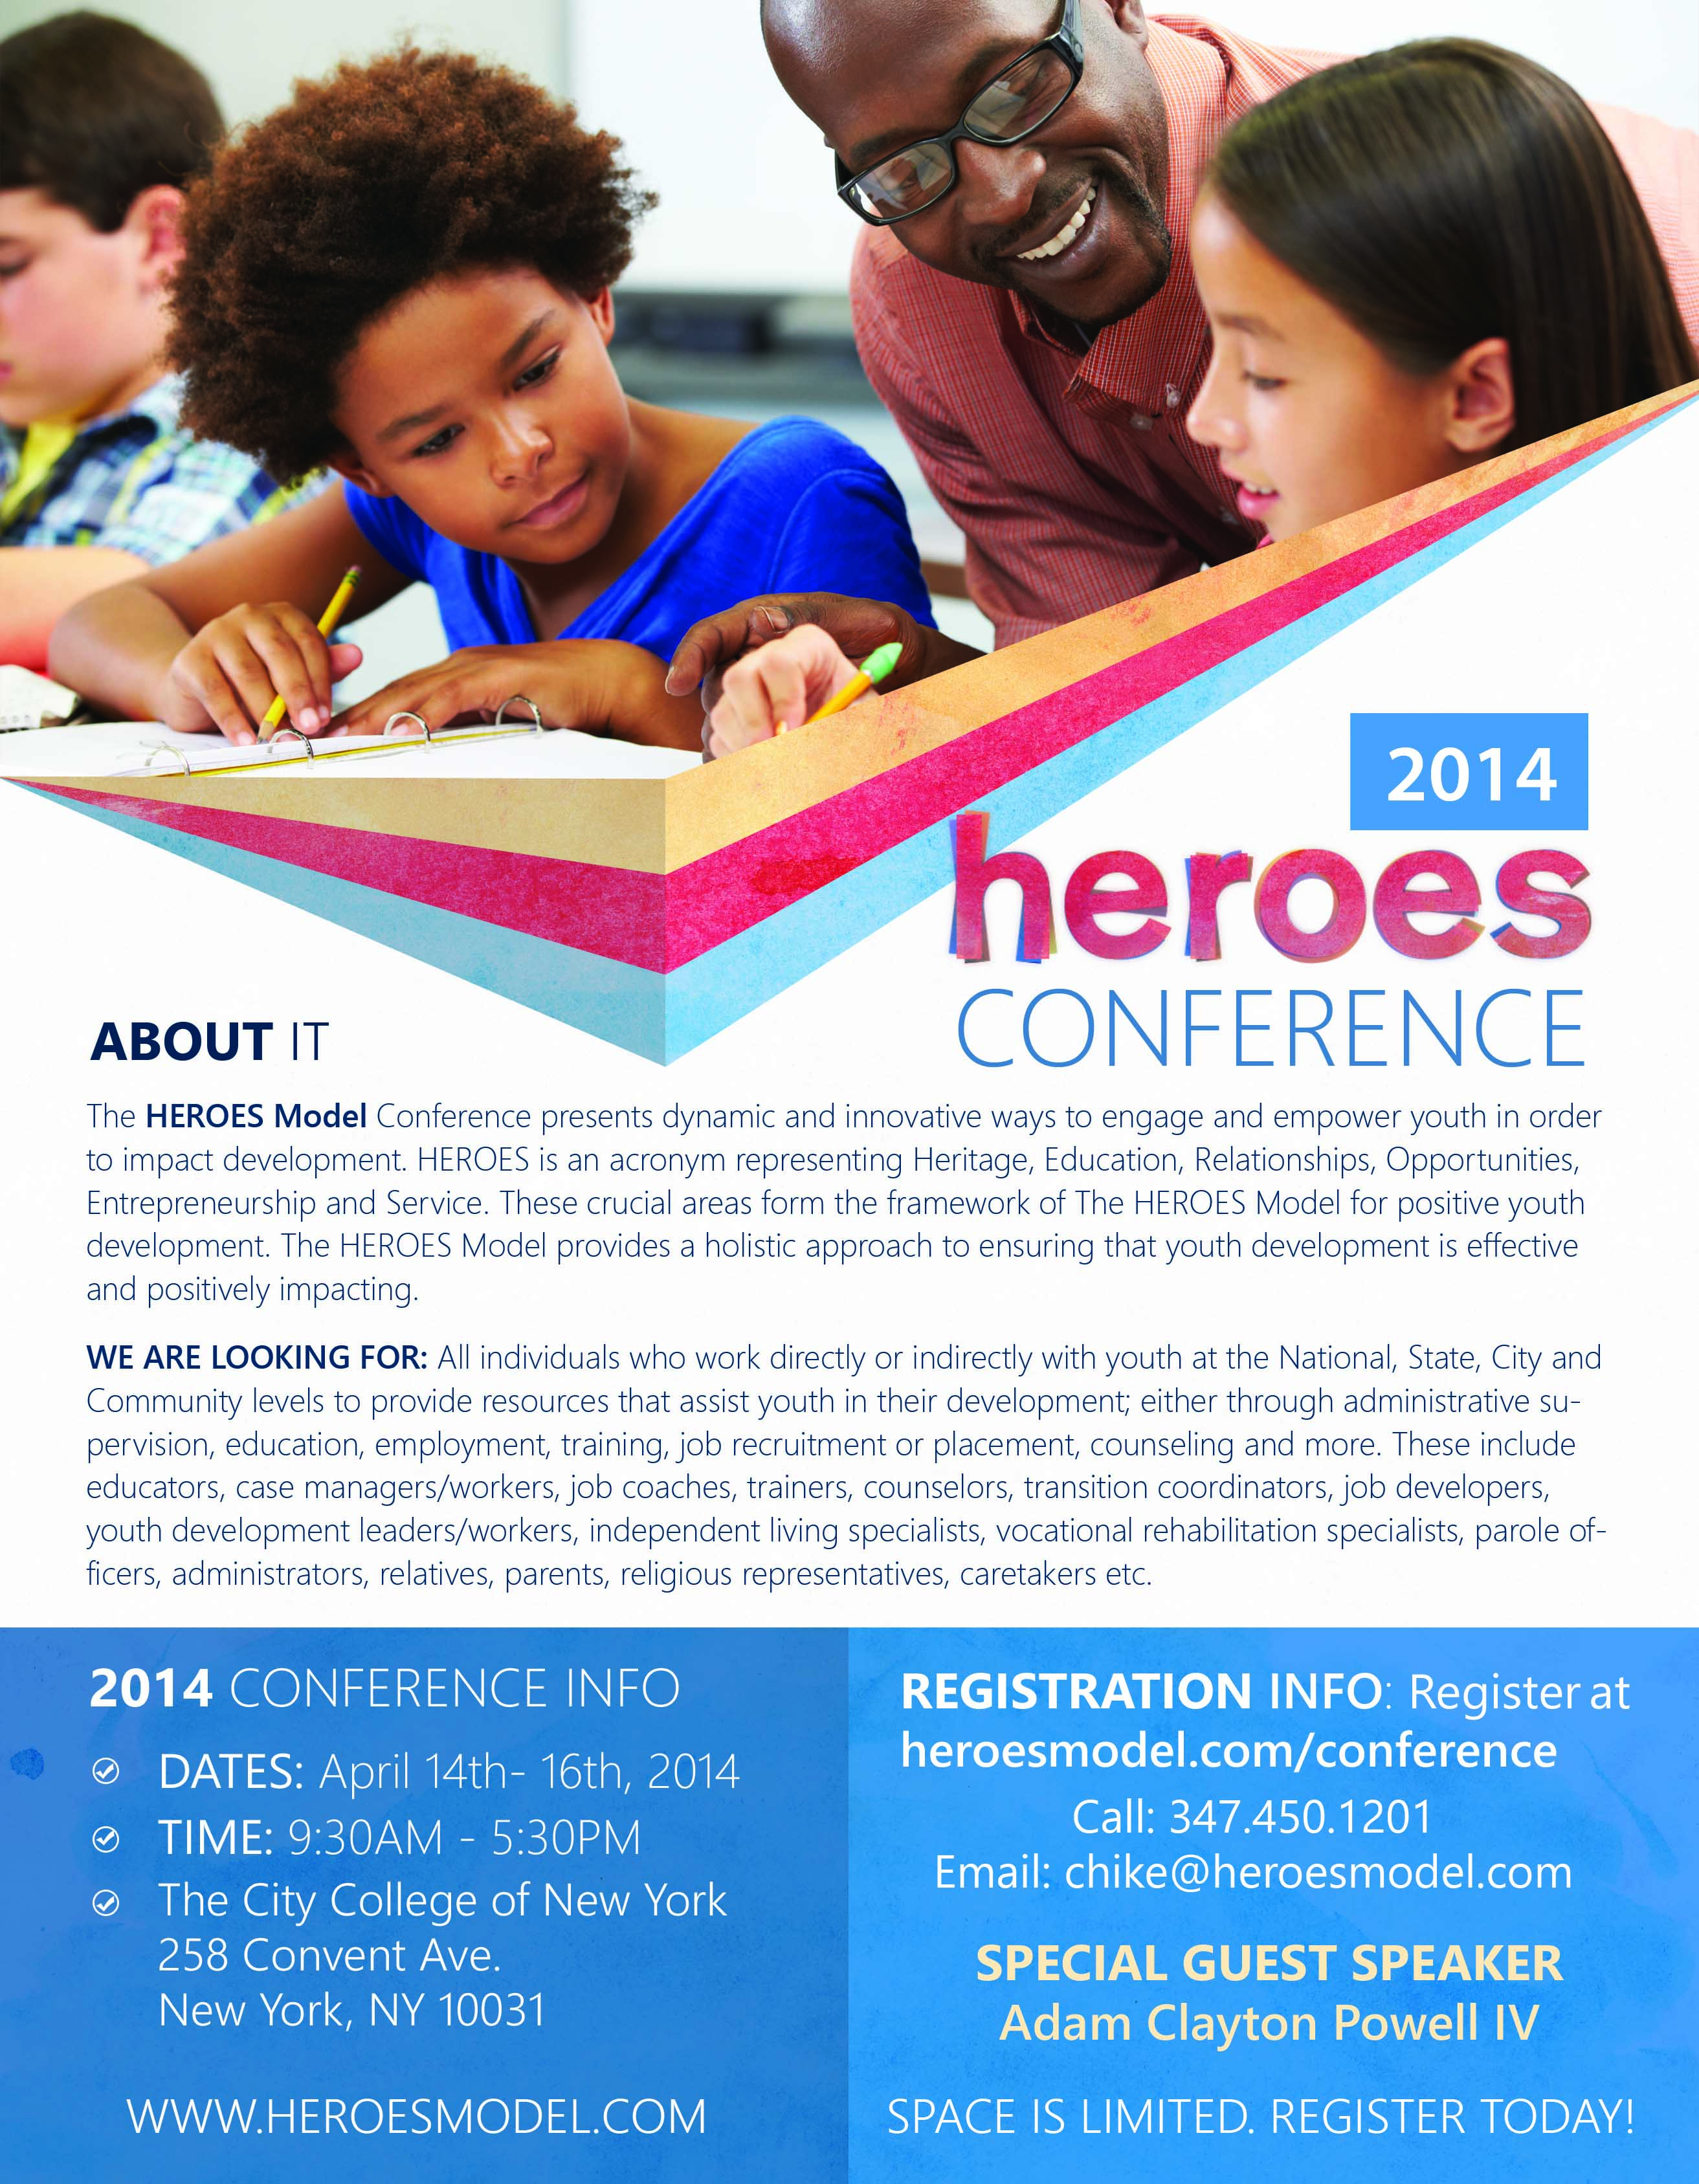 For more on the conference, please visit www.heroesmodel.com/conference